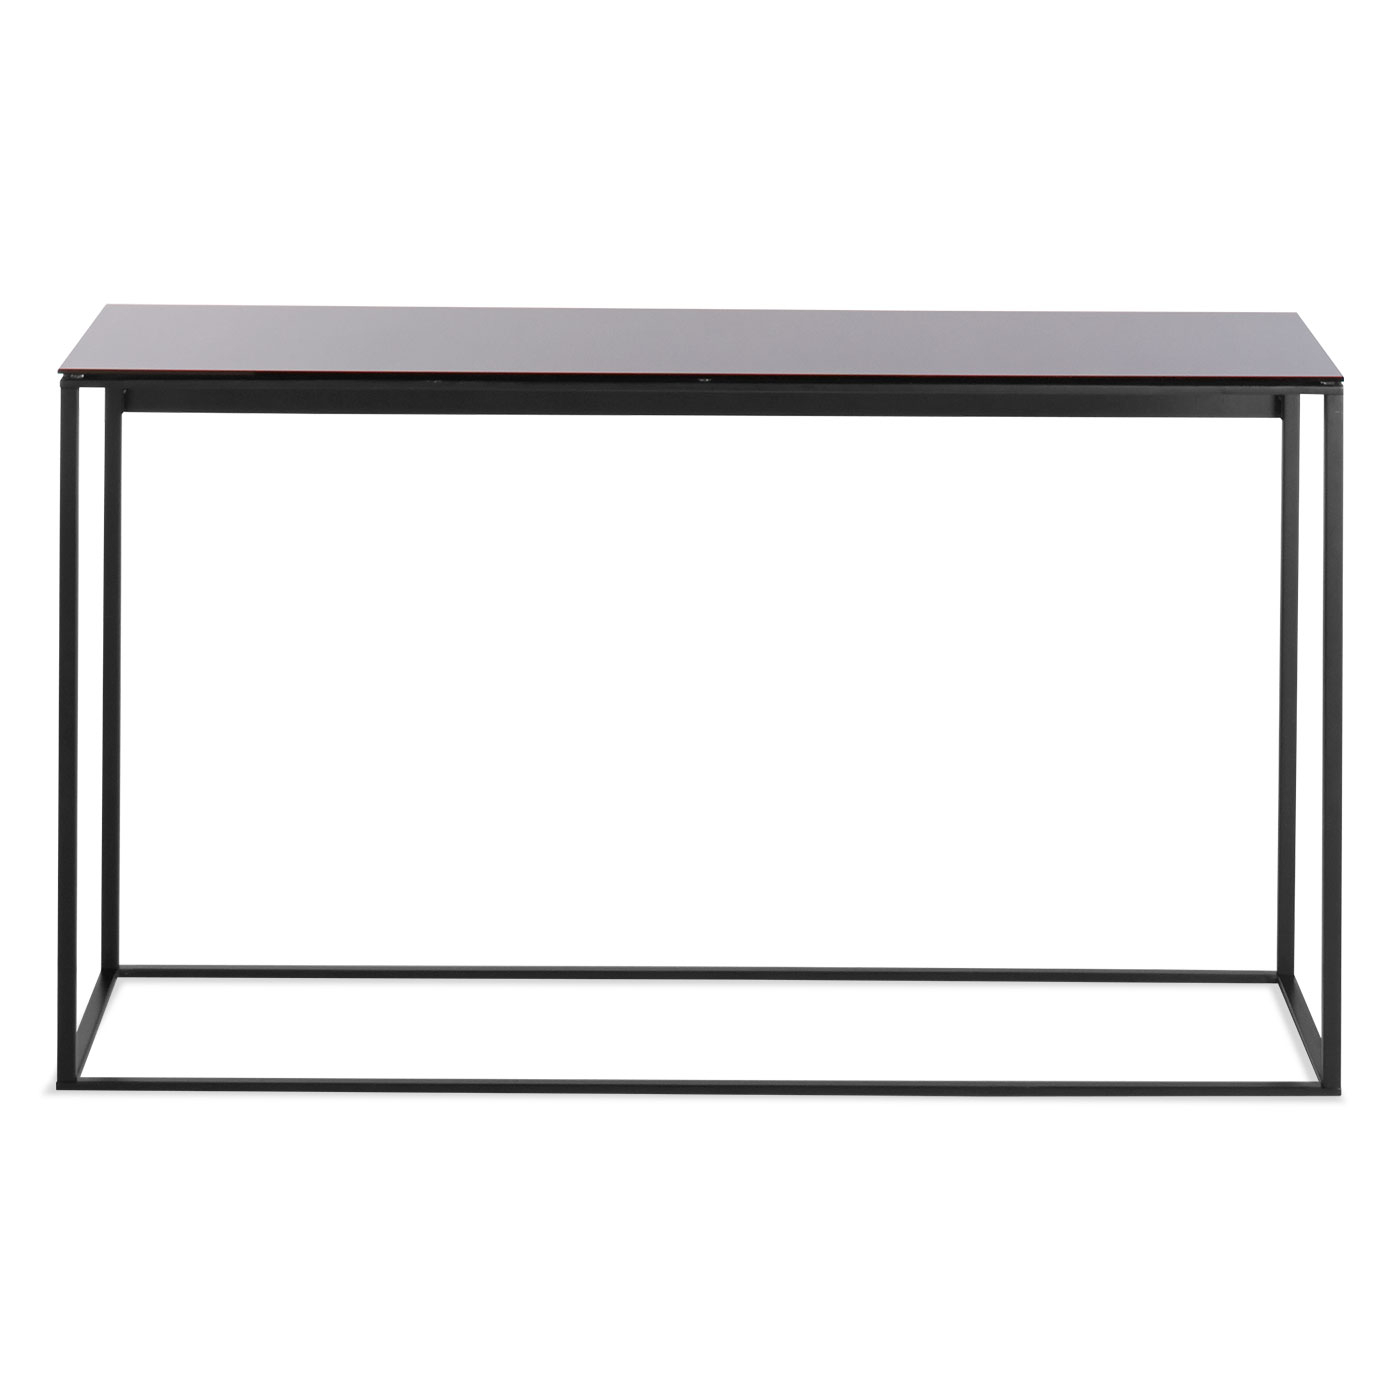 Mini Sta Console Table Modern Side Coffee Tables Blu Dot Black Pertaining To Ethan Console Tables (View 23 of 30)